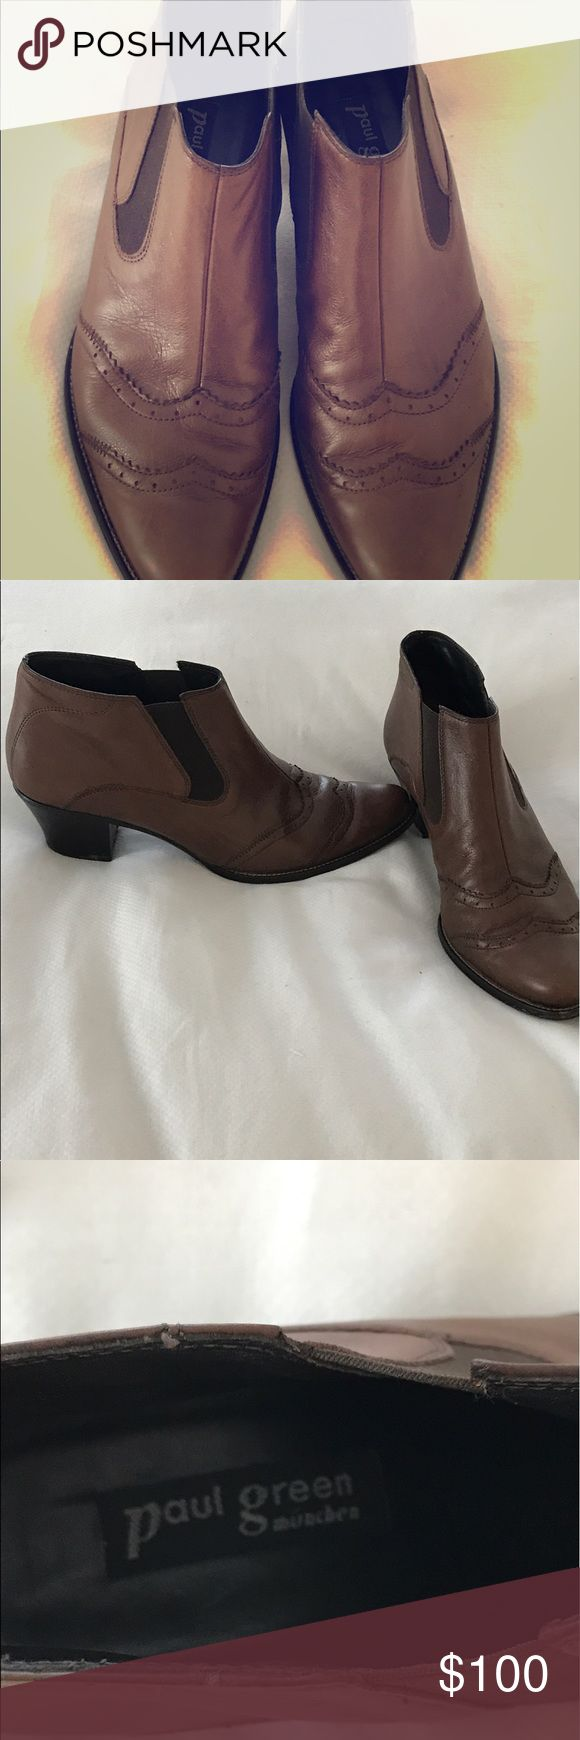 Paul Green booties, size 4 1/2 (= size 7) Paul Green size 7 booties. Extremely comfortable. Lovely rich brown color. Paul Green Shoes Ankle Boots & Booties